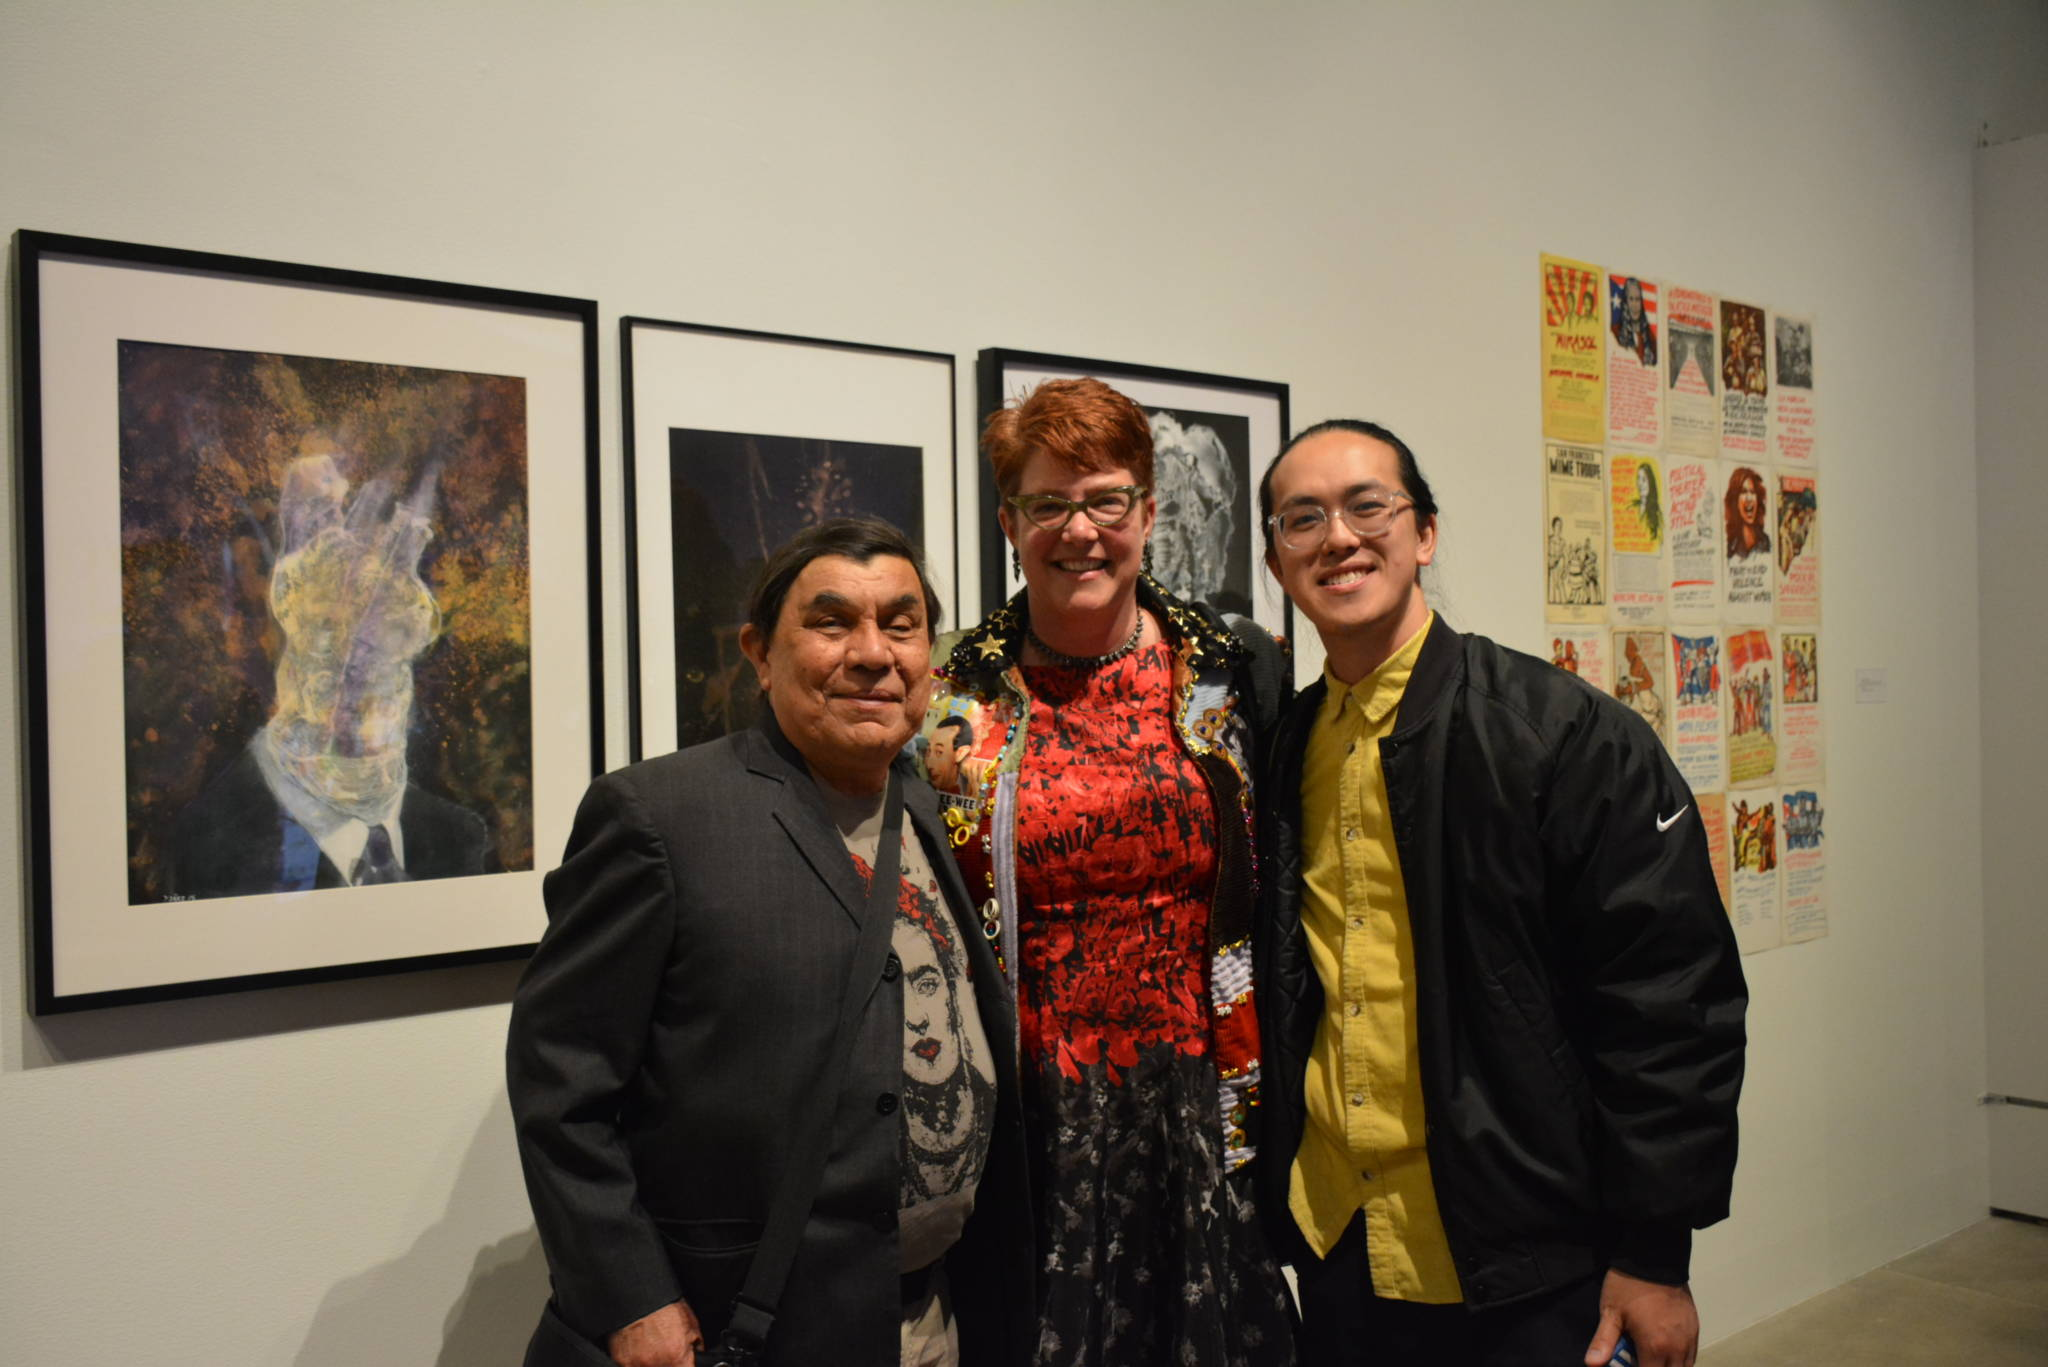 Artists René Yañez, Katie Gilmartin and Dominic Chen.